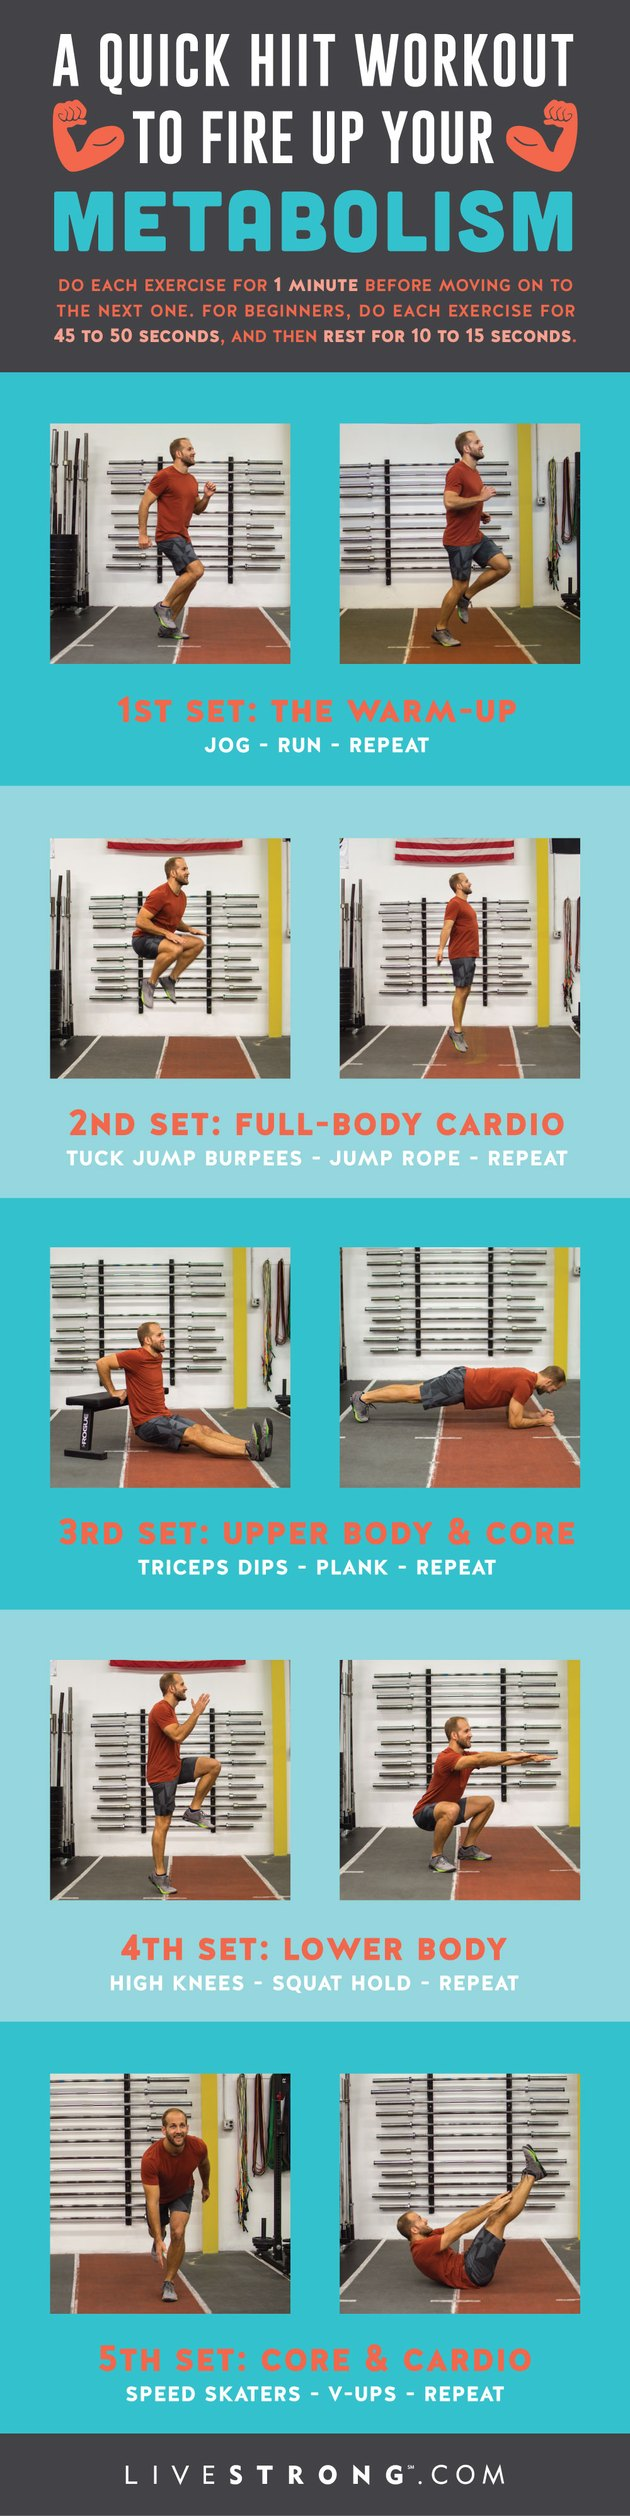 Take this printable one sheet with you so you can work out on the go.